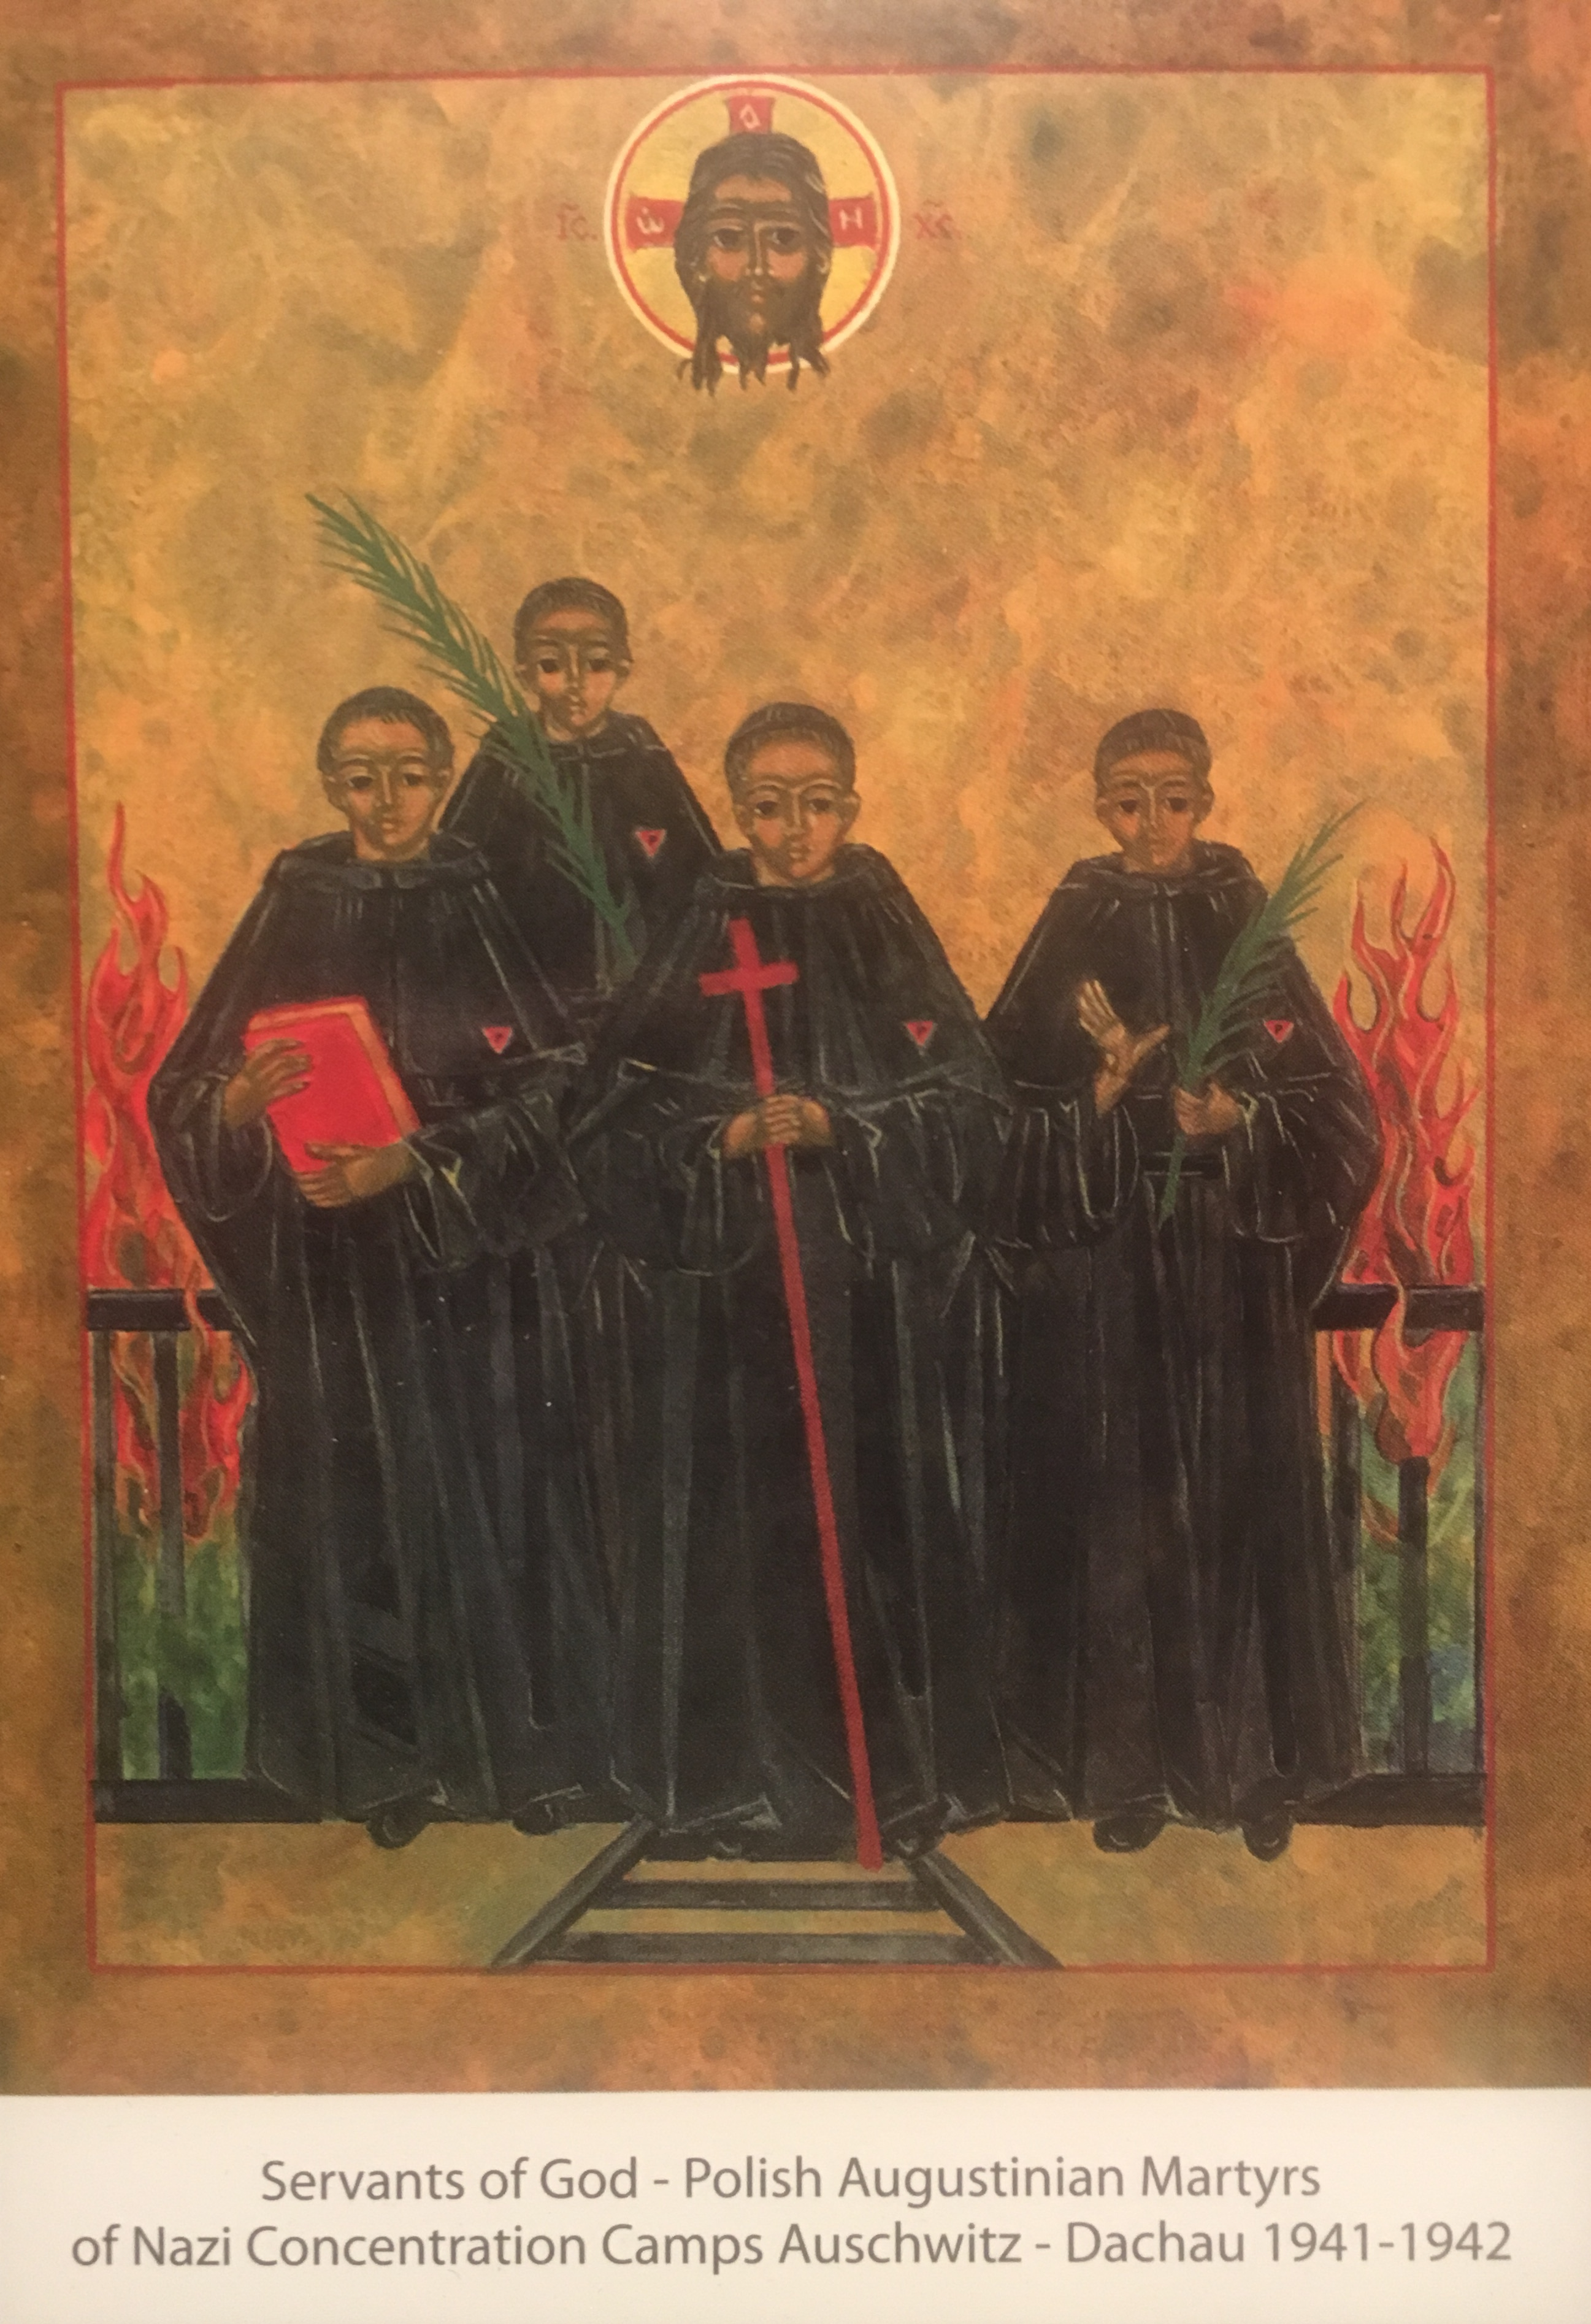 [the Augustinian Martyrs]